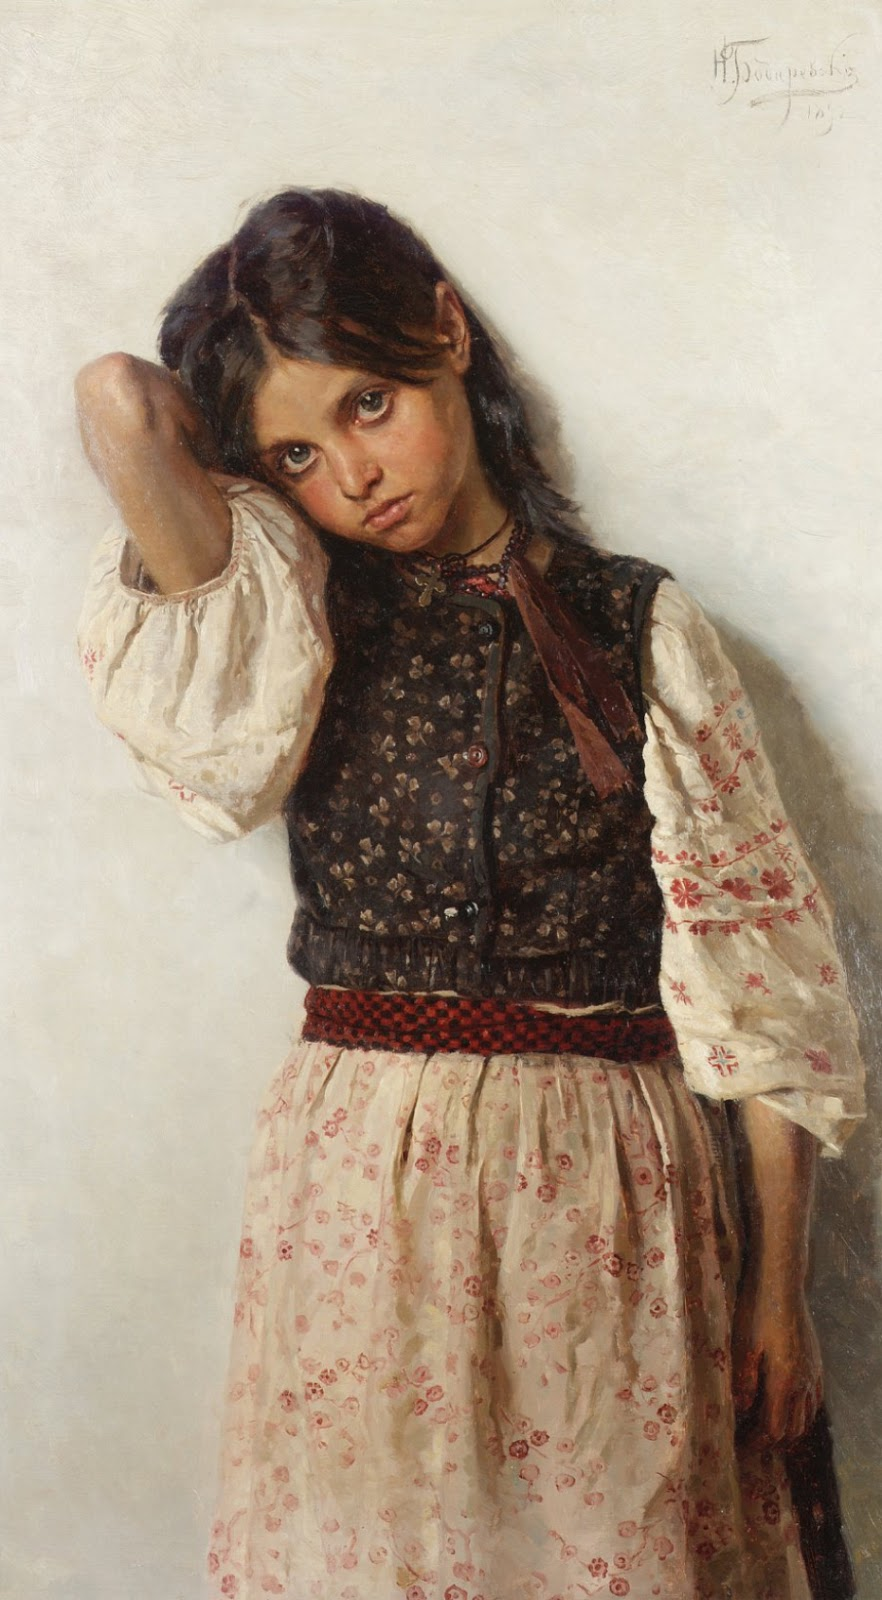 Paintings by Nikolai Bodarevsky (1850-1921)